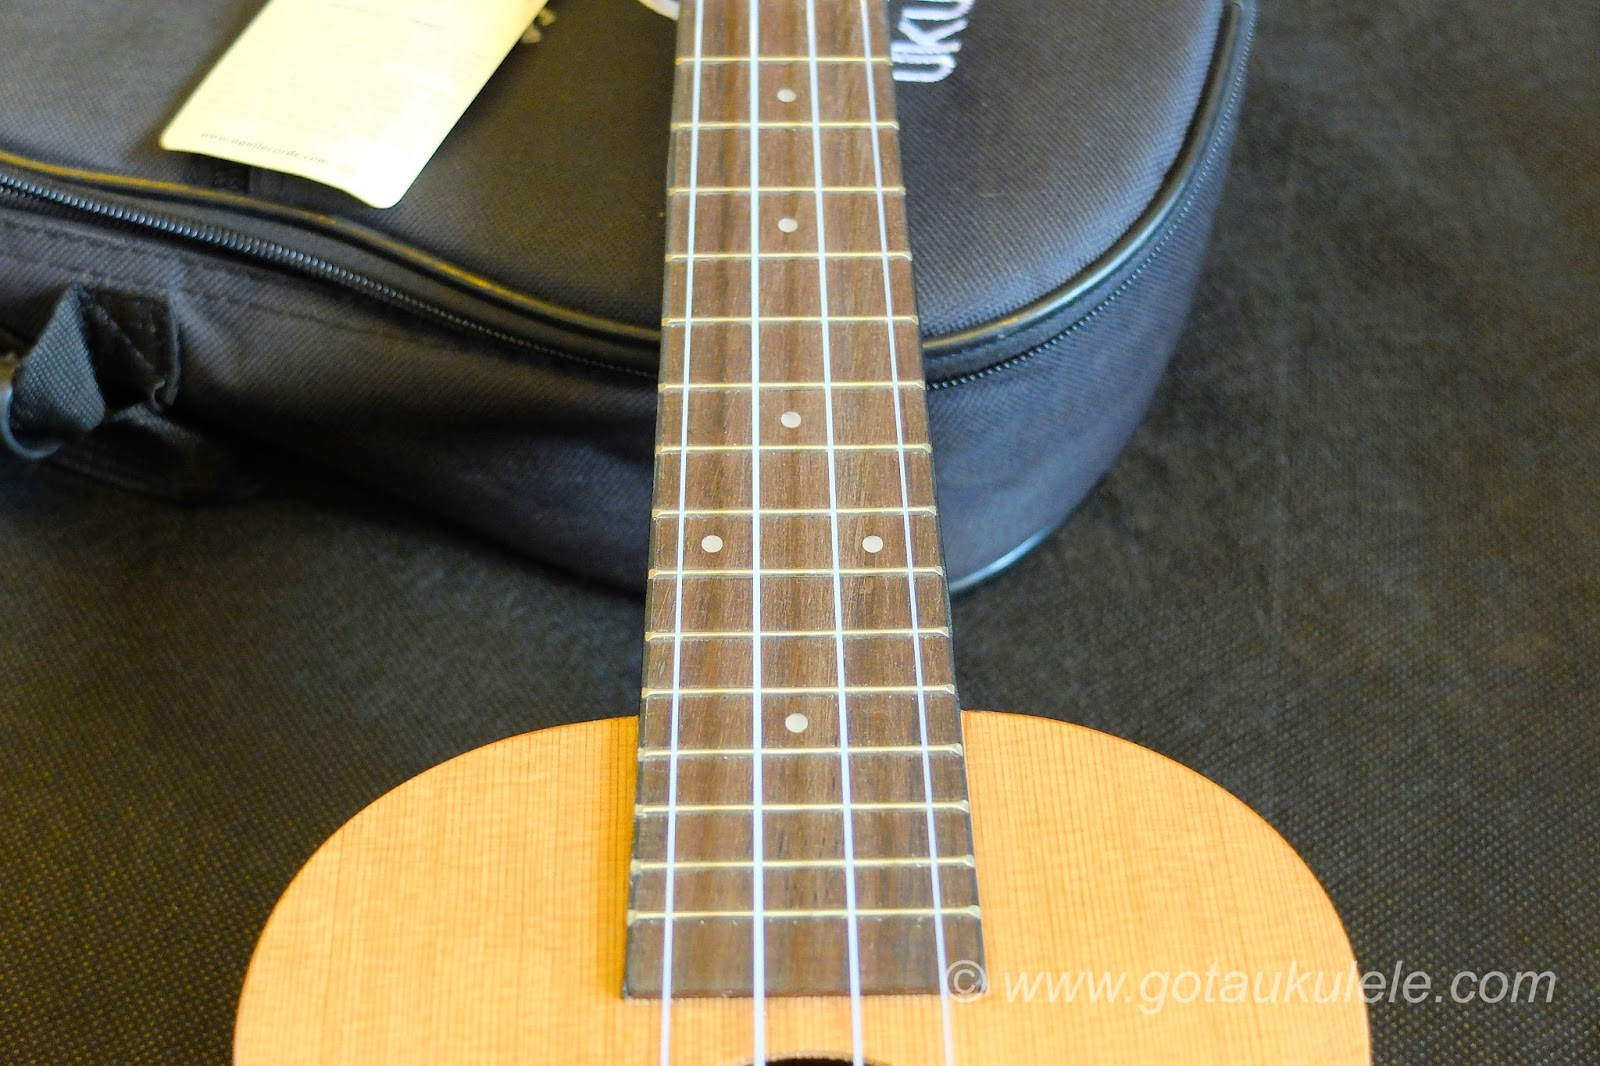 CloudMusic HM12 Ukulele neck